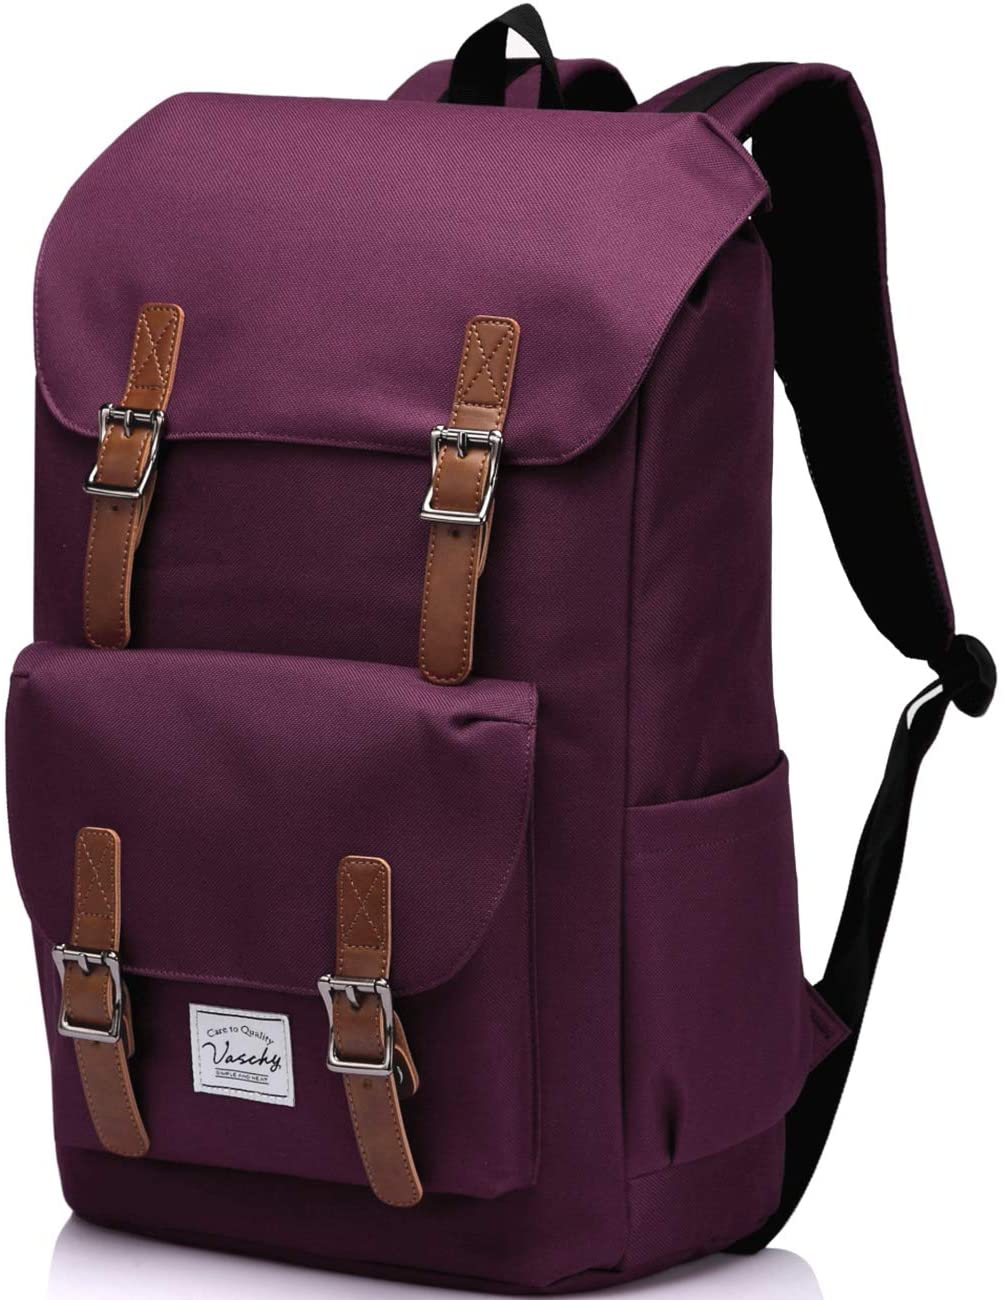 Vintage School Backpack for Women,Vaschy Water Resistant Laptop Backpack Burgundy